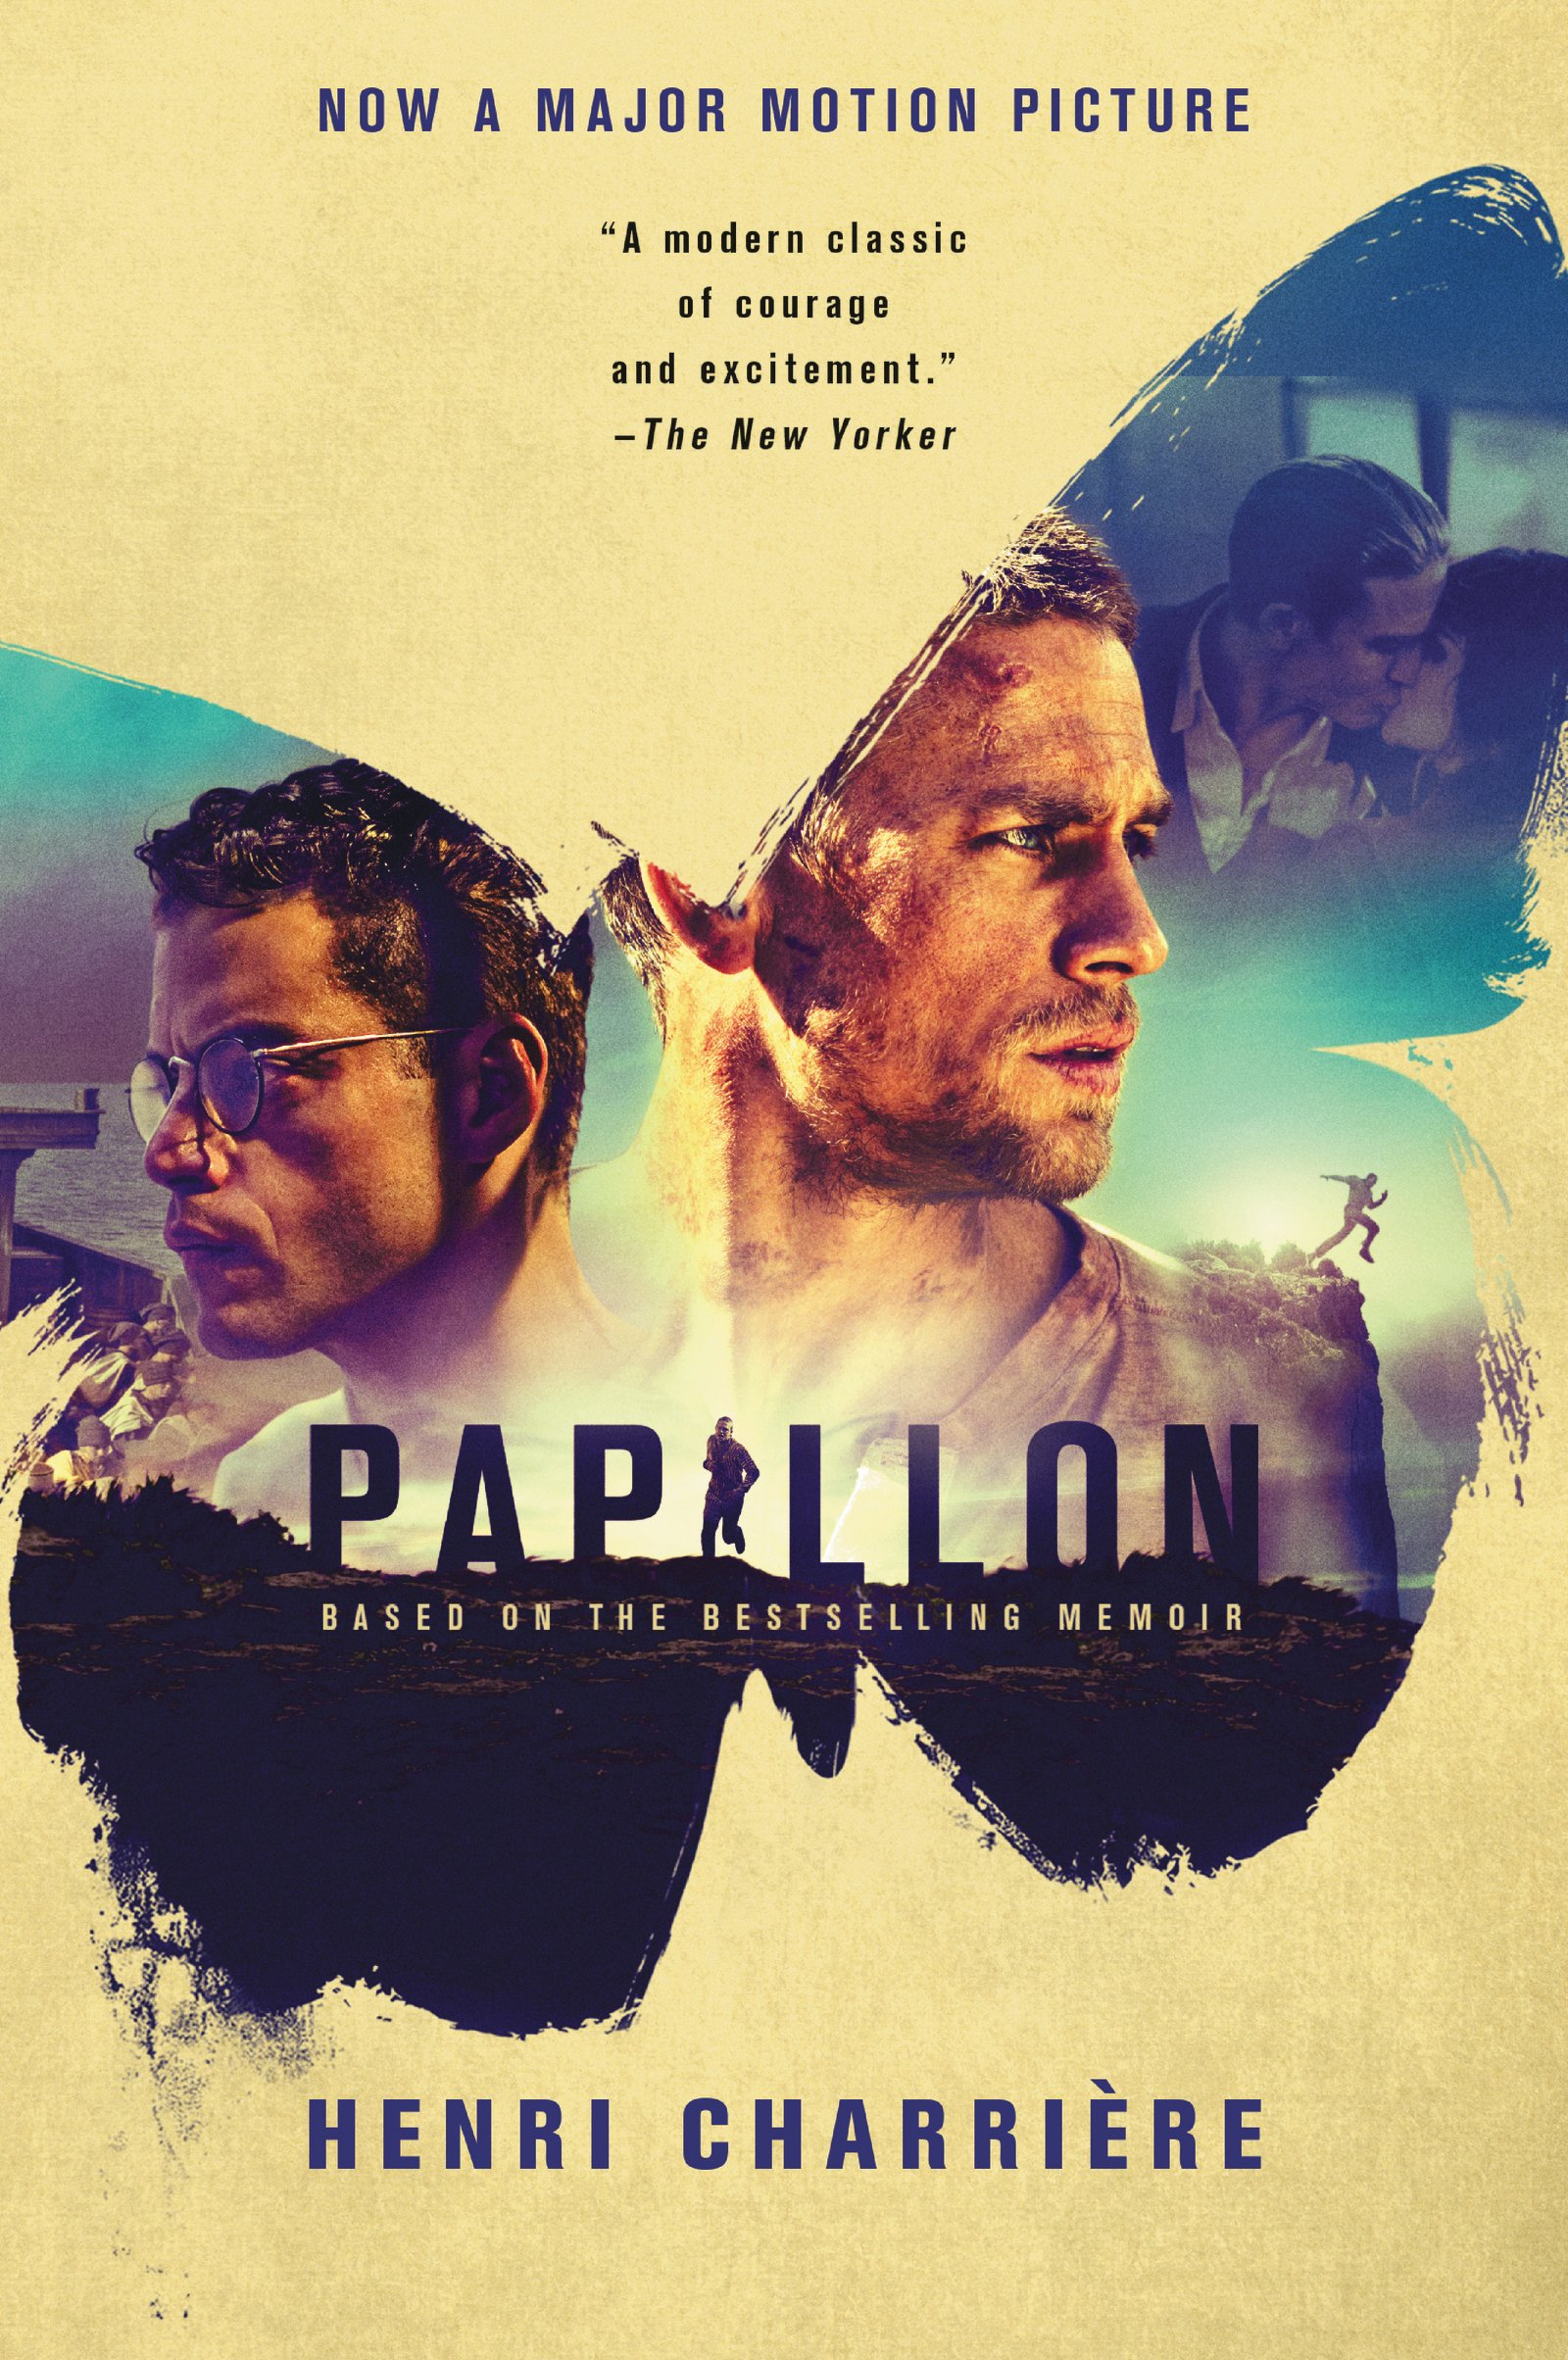 Click to get Papillon at Amazon.com